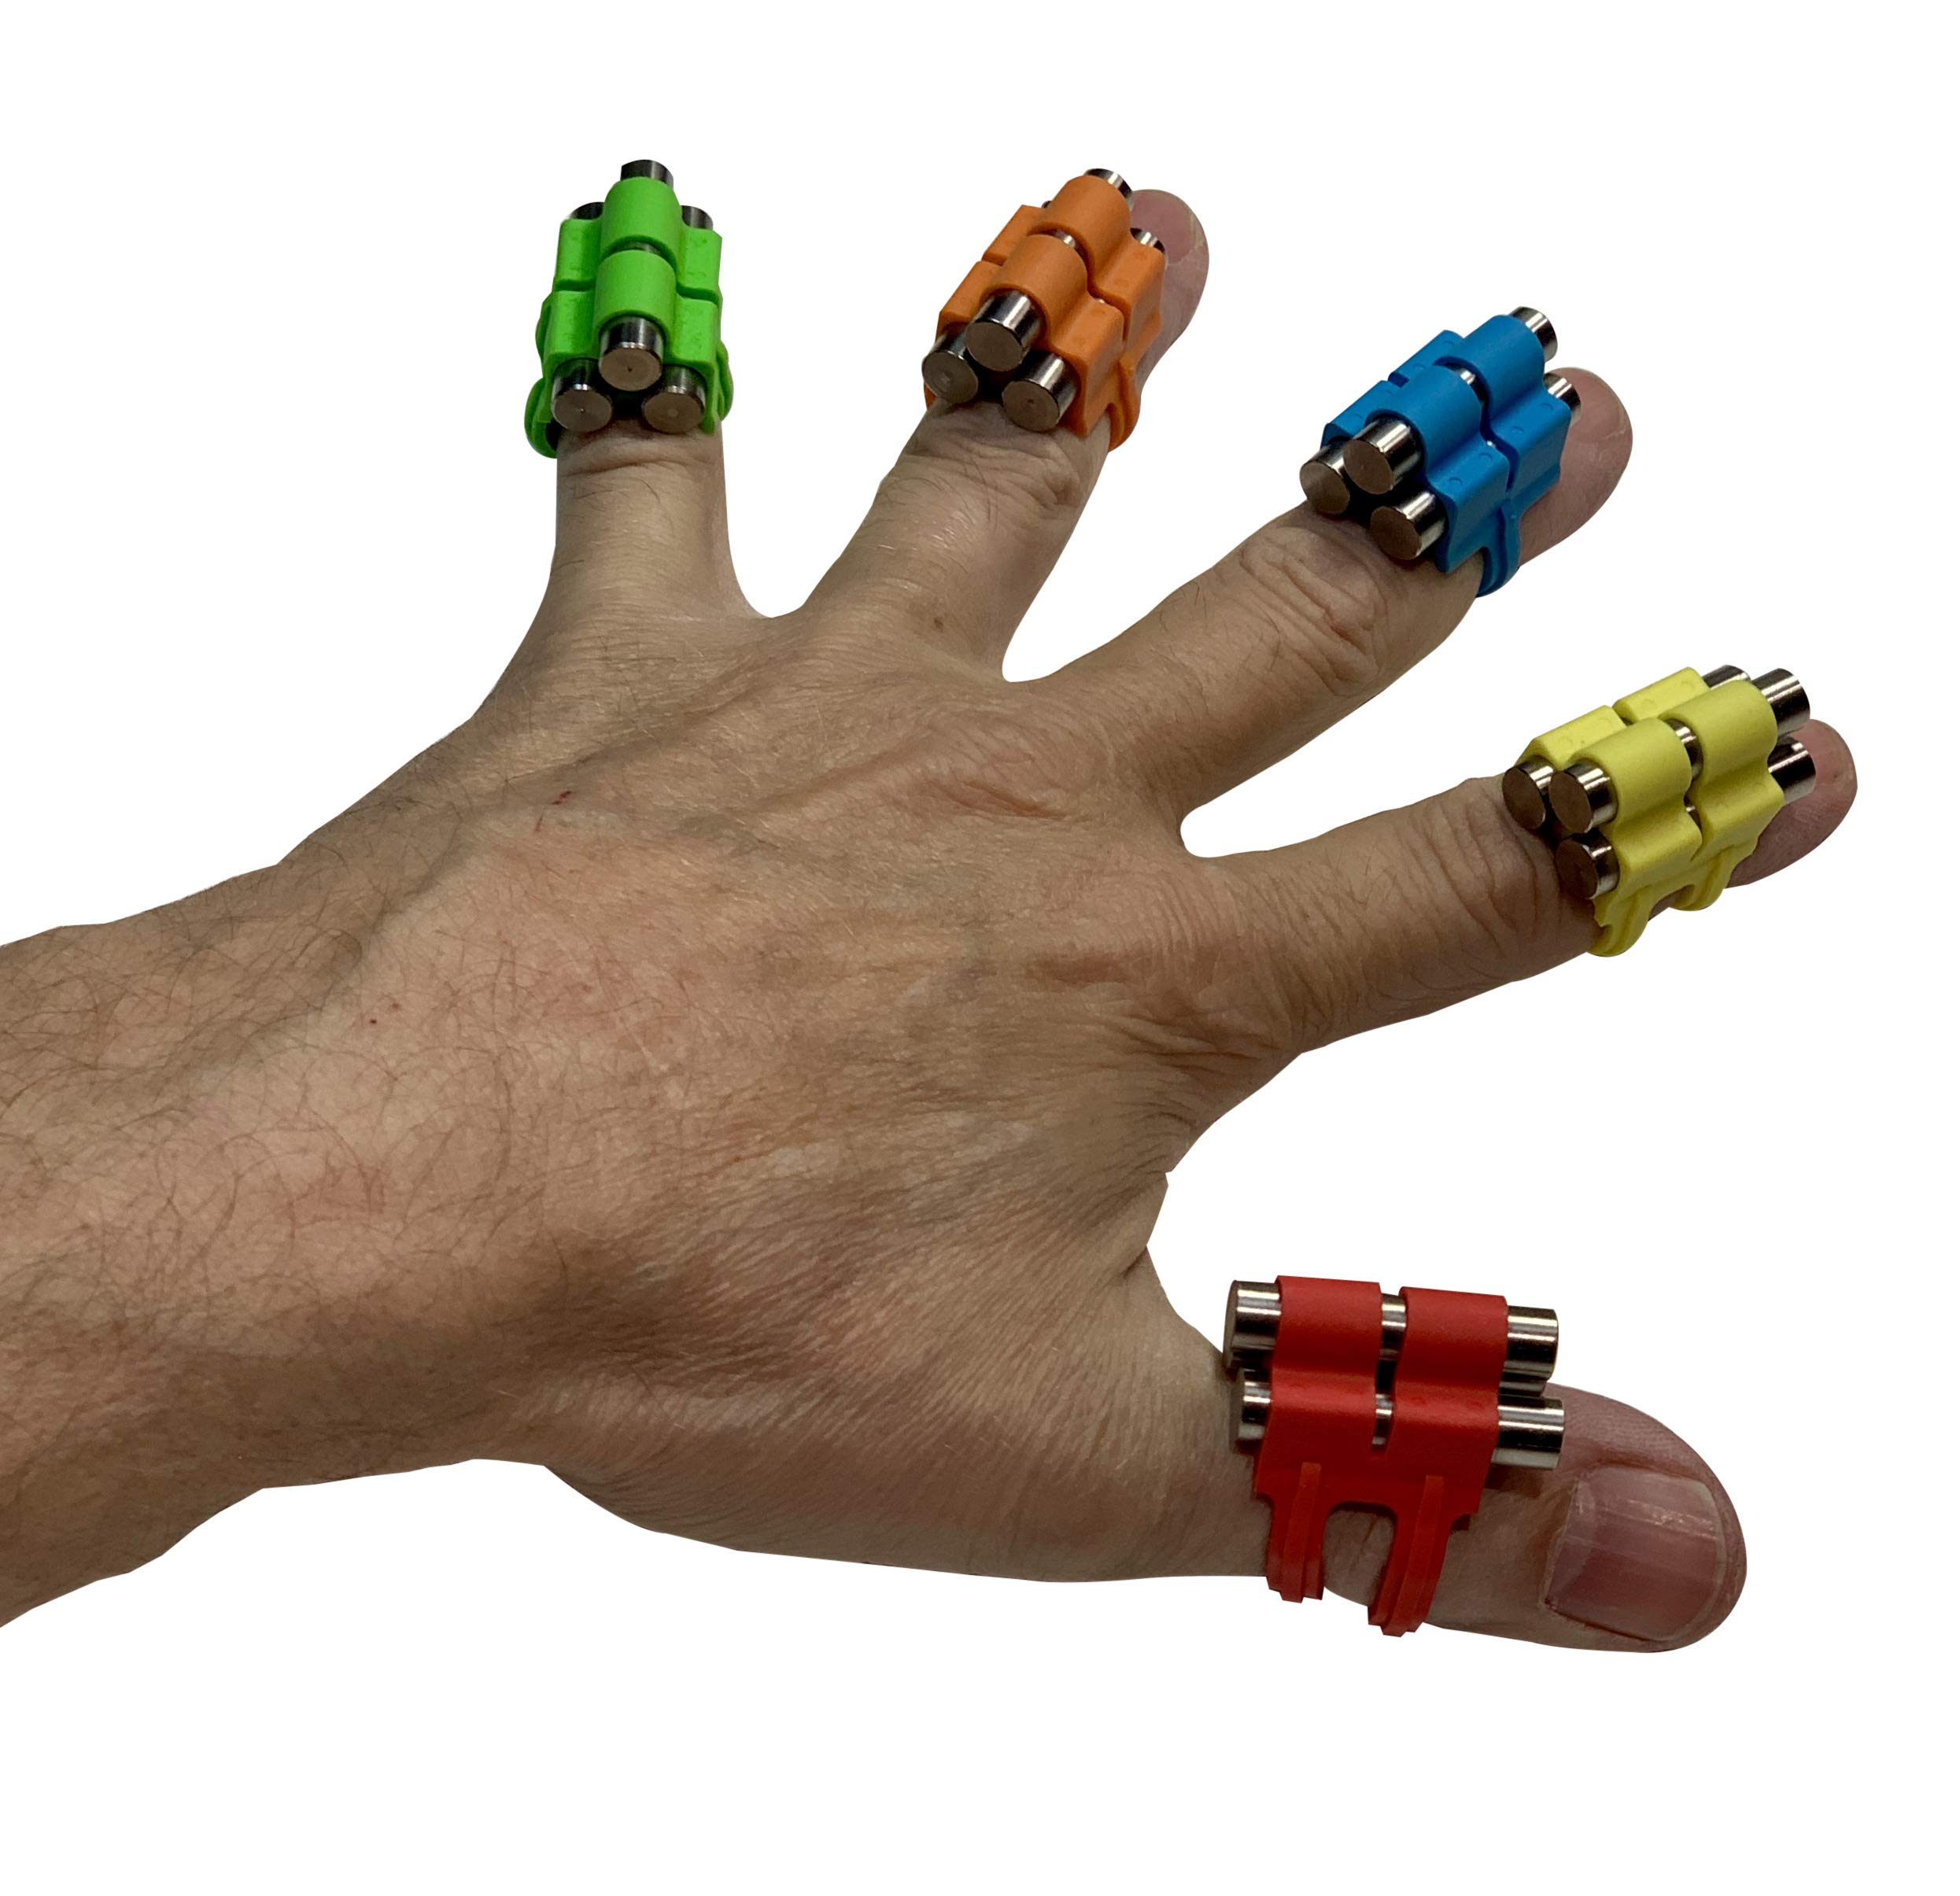 Finger Weights Original - Set of 5 - for Music Sports Gamers and Health Black or Multicolor Grip Strength Hand Grip Strengthener Speed Trainer (Multicolor)